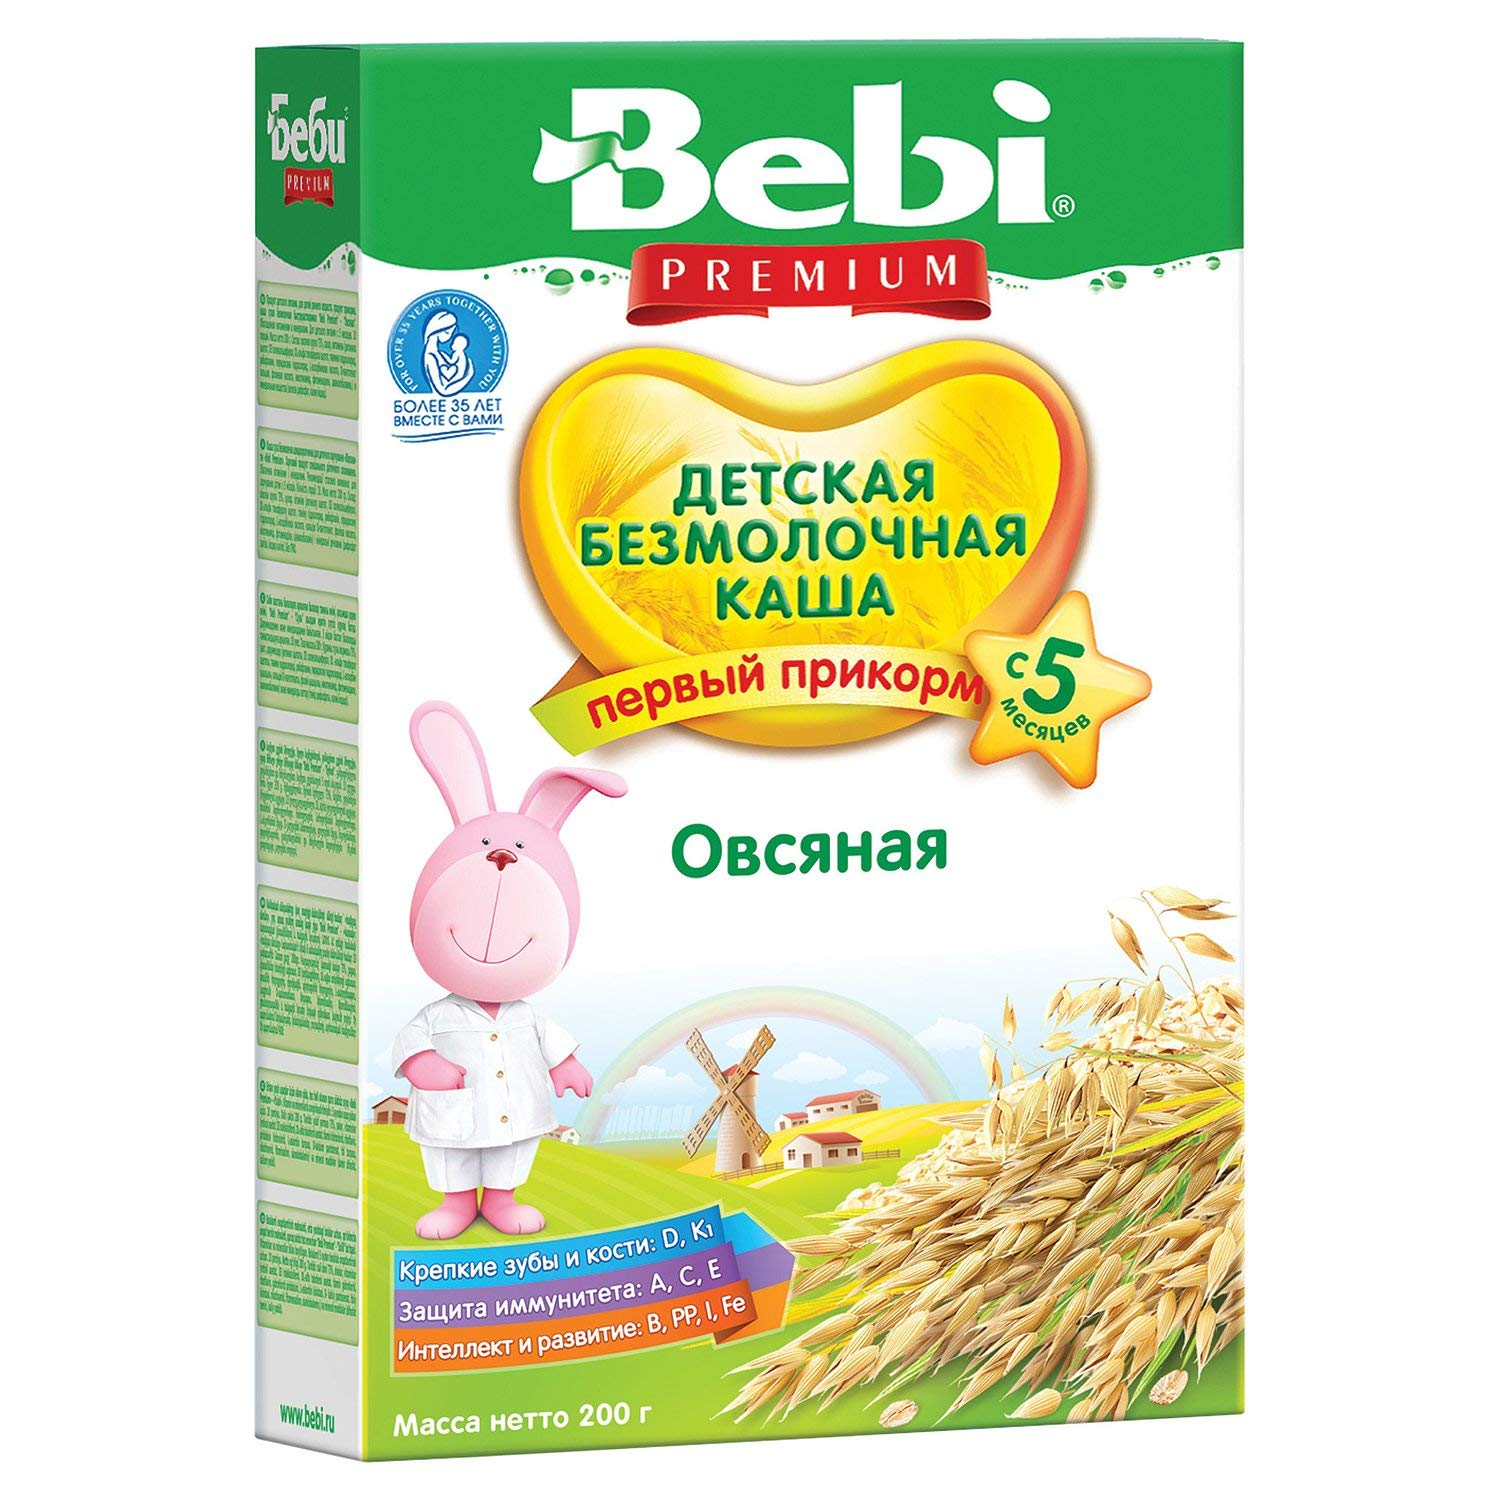 Bebi Cereal for Babies Oatmeal NEW Bebies Tulsa Mall 200g 5 From Eu months